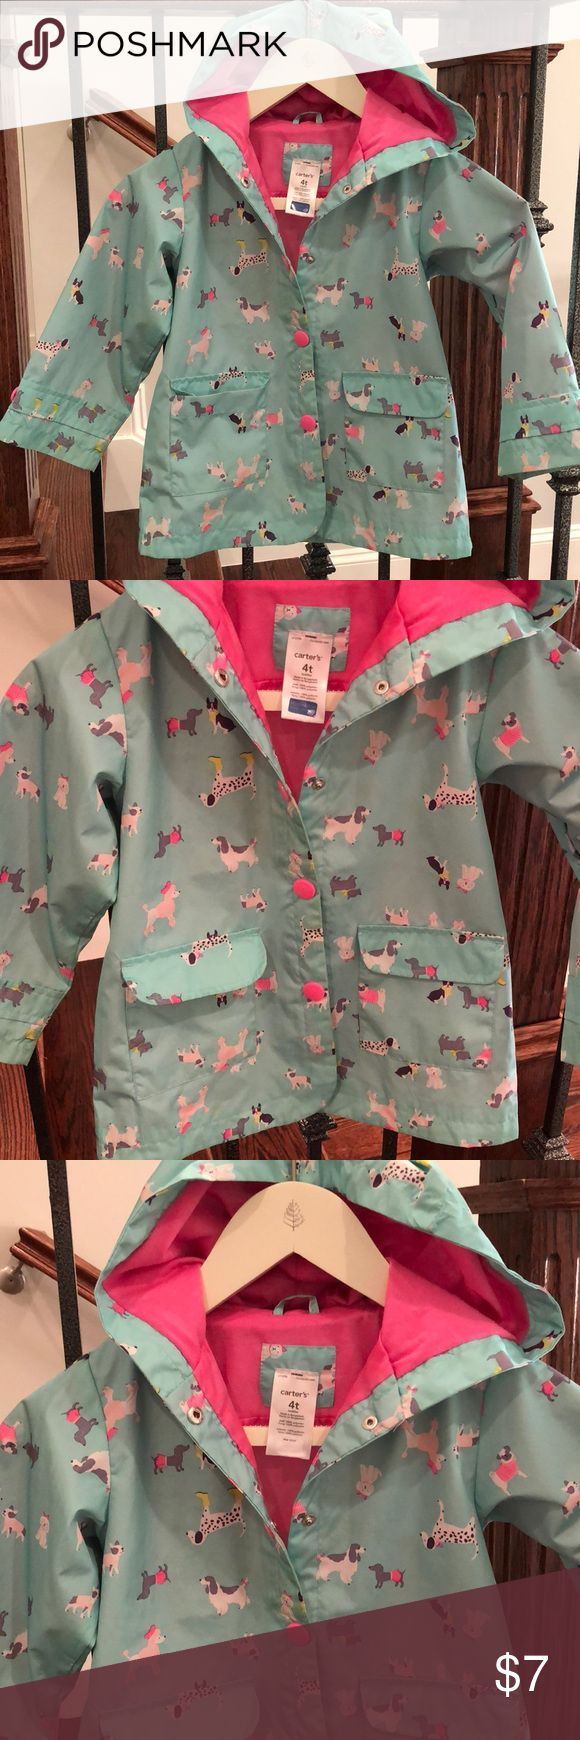 Girls puppy dog raincoat Cutest little raincoat!! Girls size 4T by Carters. Button front with pockets and hood. Coat is pre-loved and shows some signs of wear (light marks, see picture 6). No punctures or tears to fabric. Lots of wear left and ready for a new little puppy lover!! Questions welcome. Carter's Jackets & Coats Raincoats